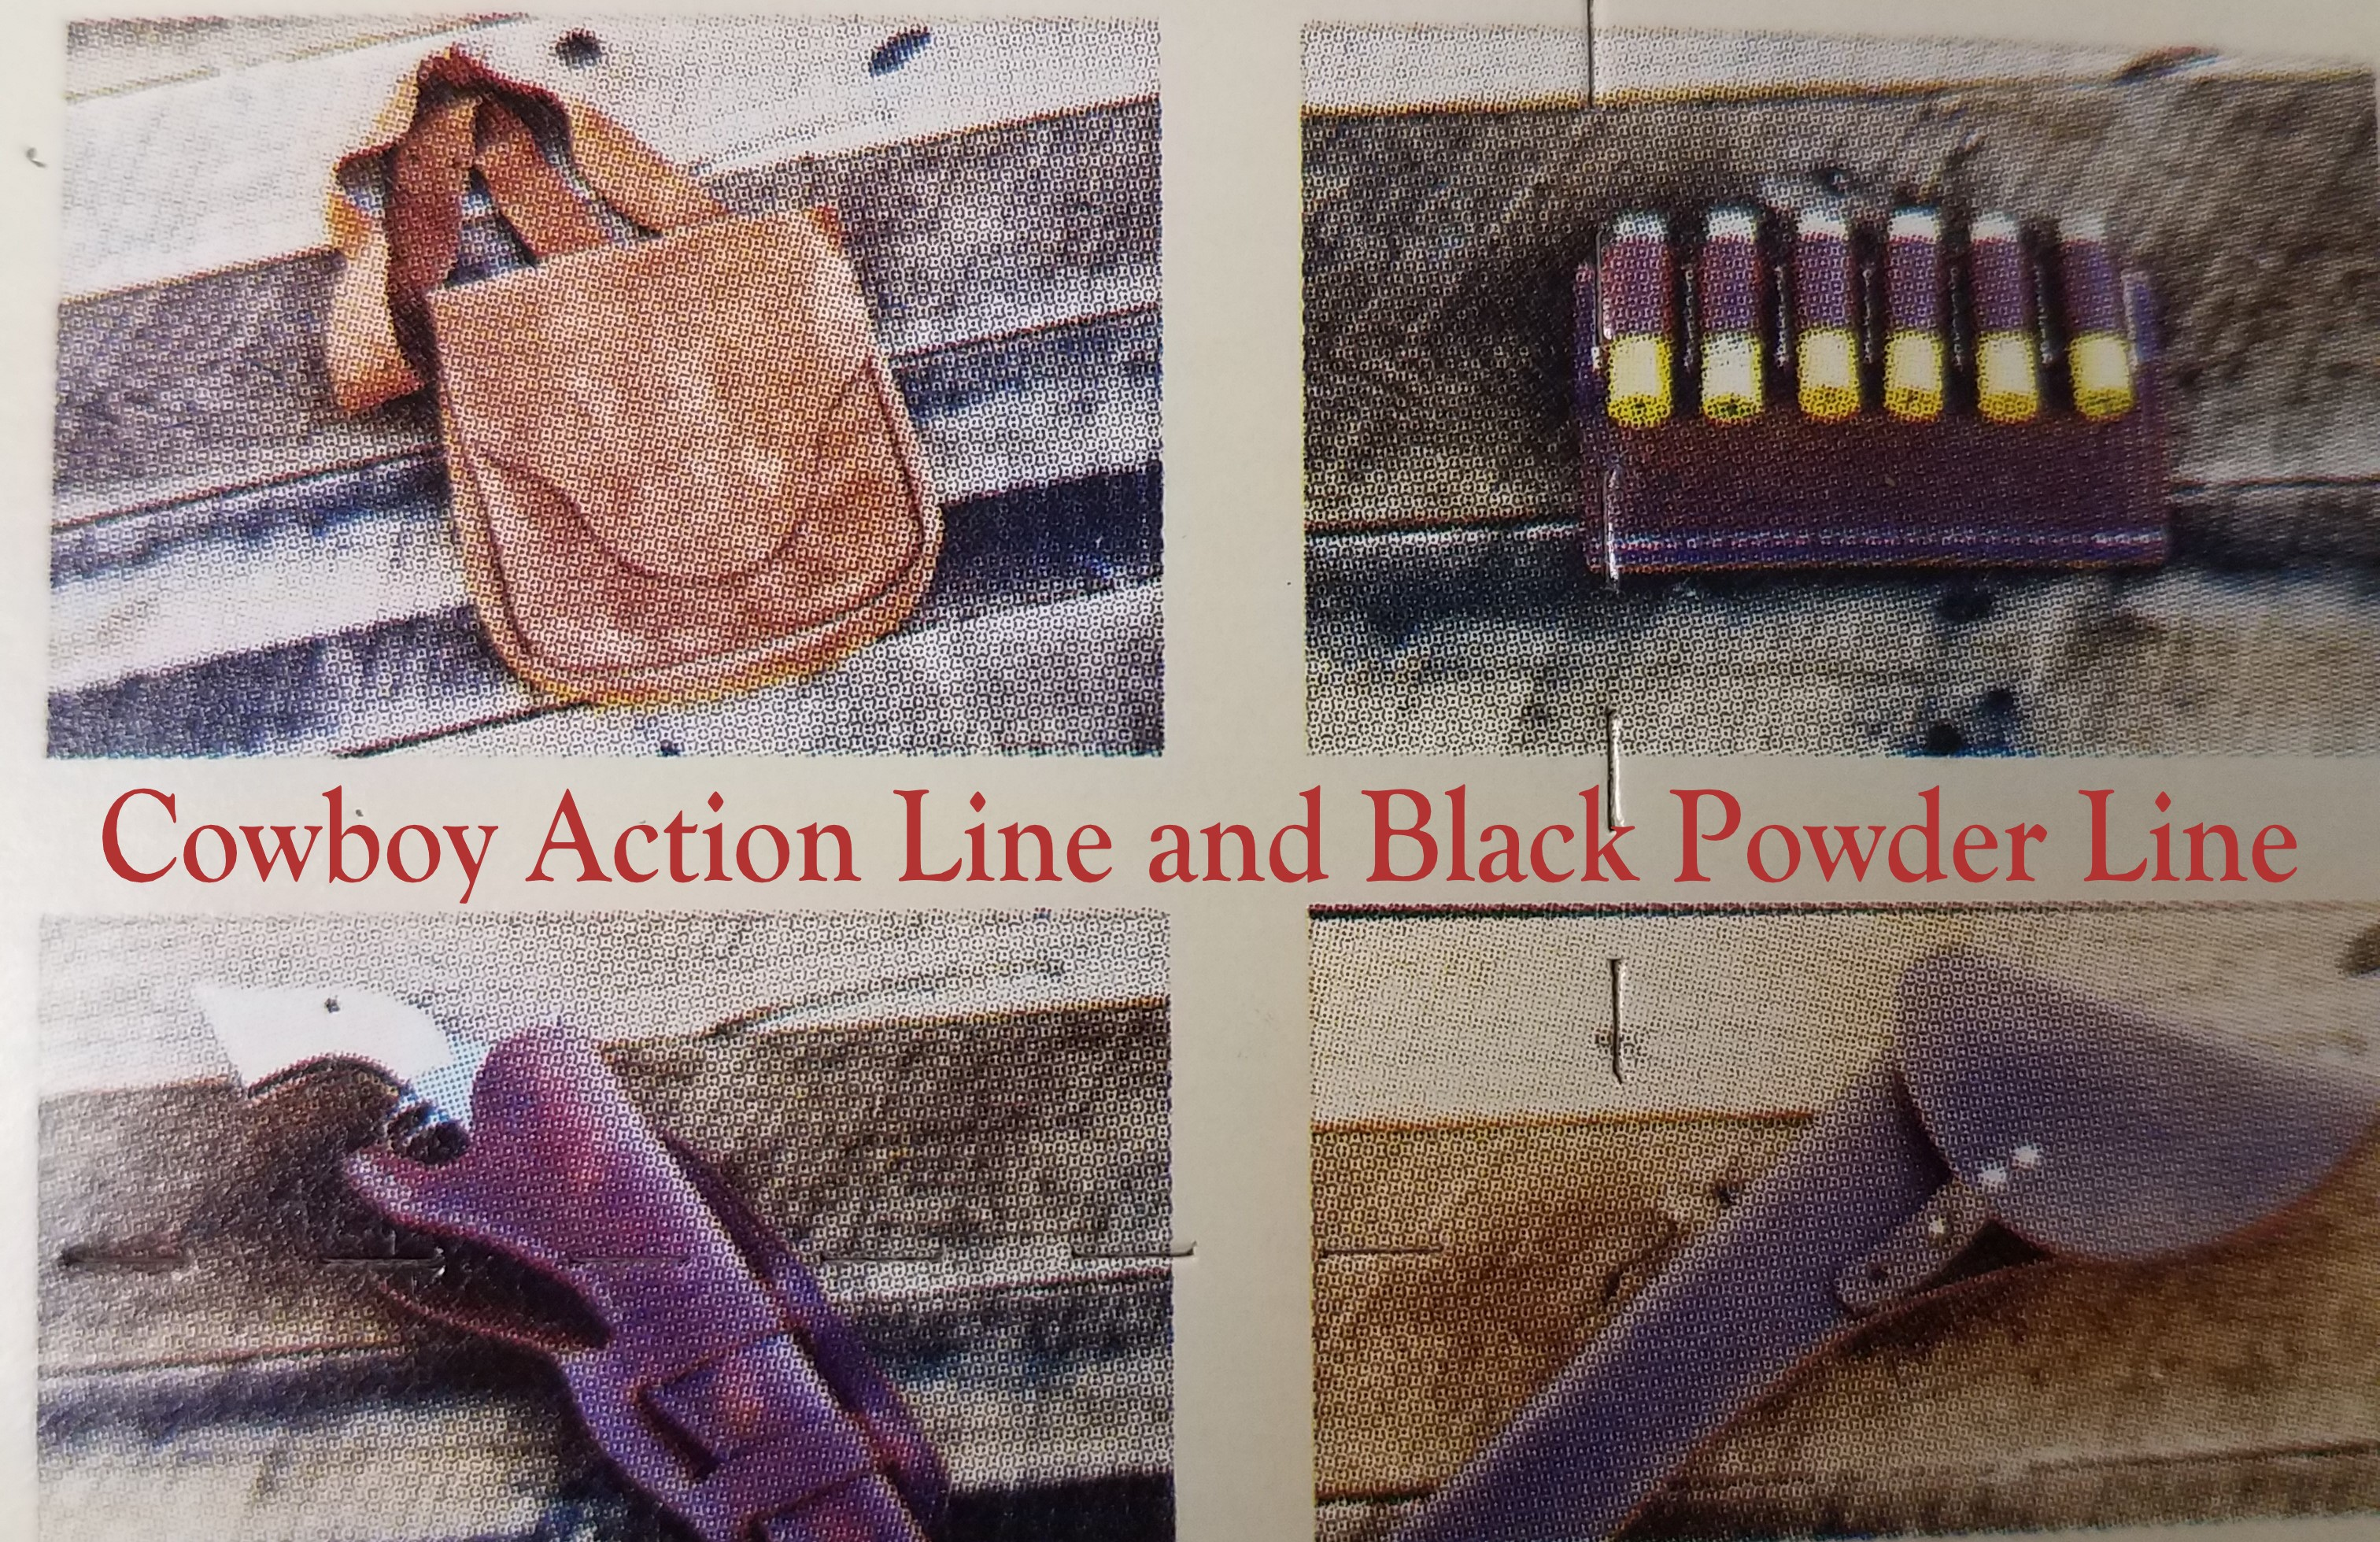 COWBOY ACTION/BLACK POWDER